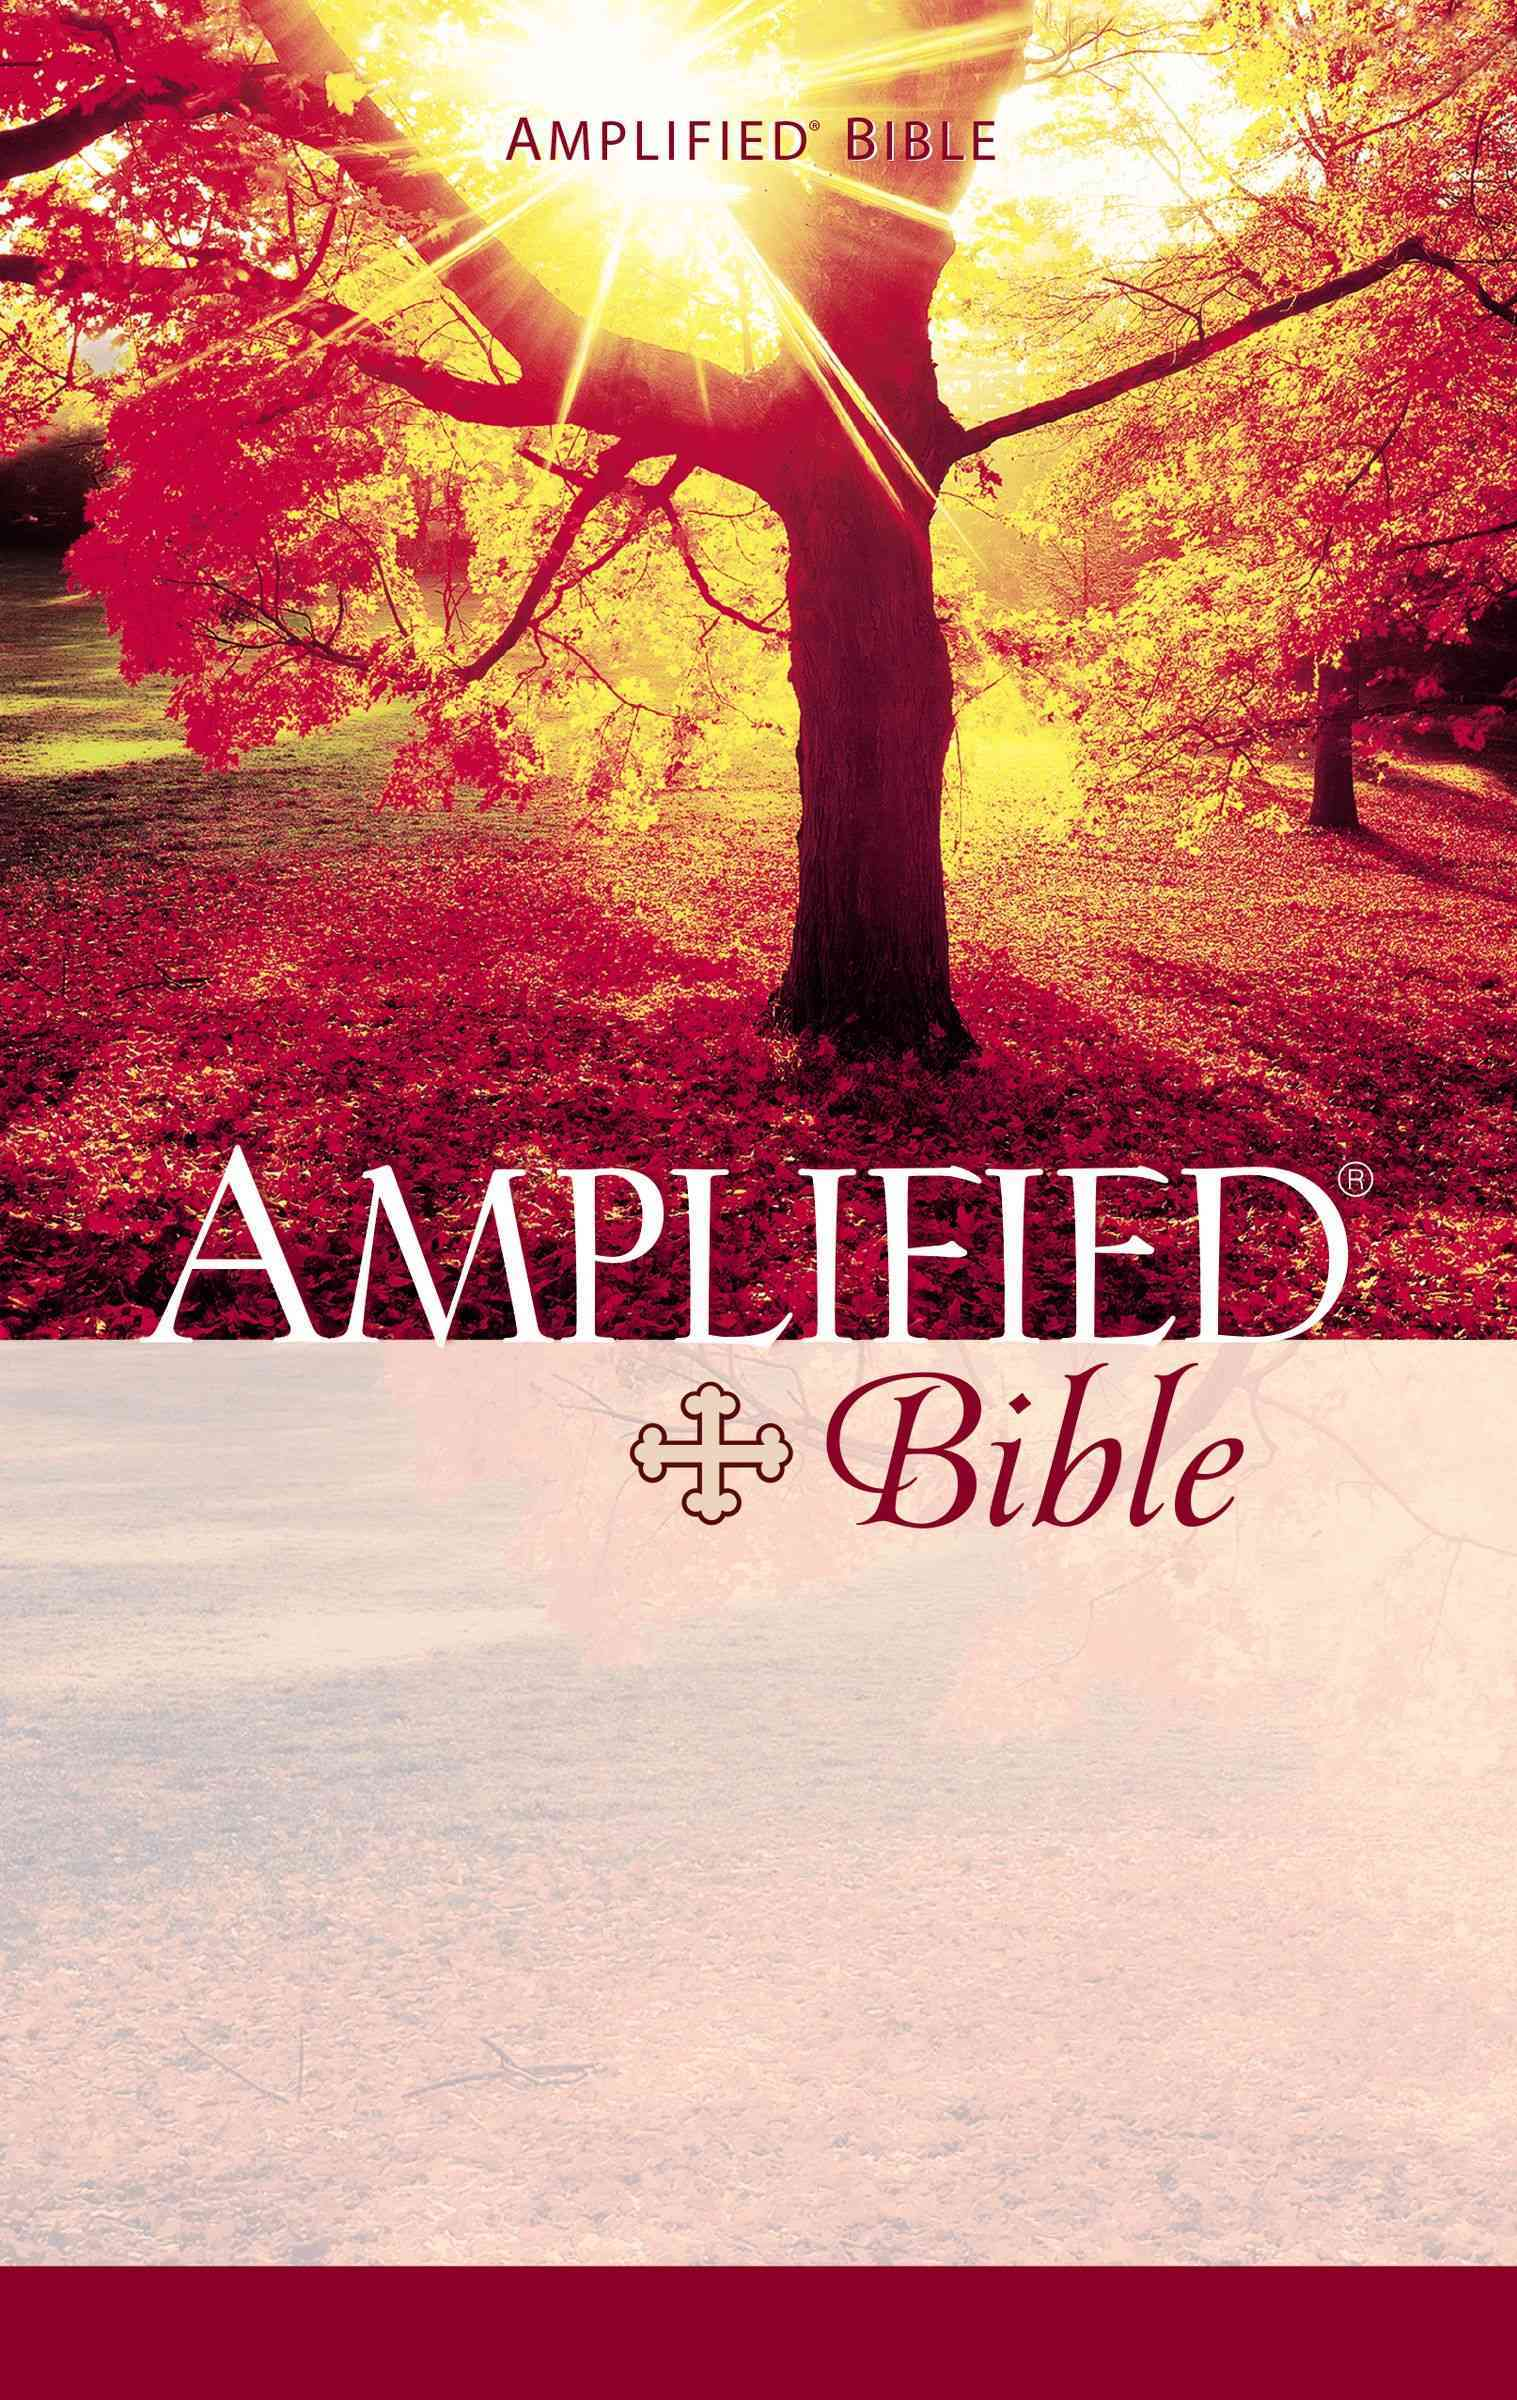 The Amplified Bible/Containing the Amplified Old Testament and the Amplified New Testament (Paperback)